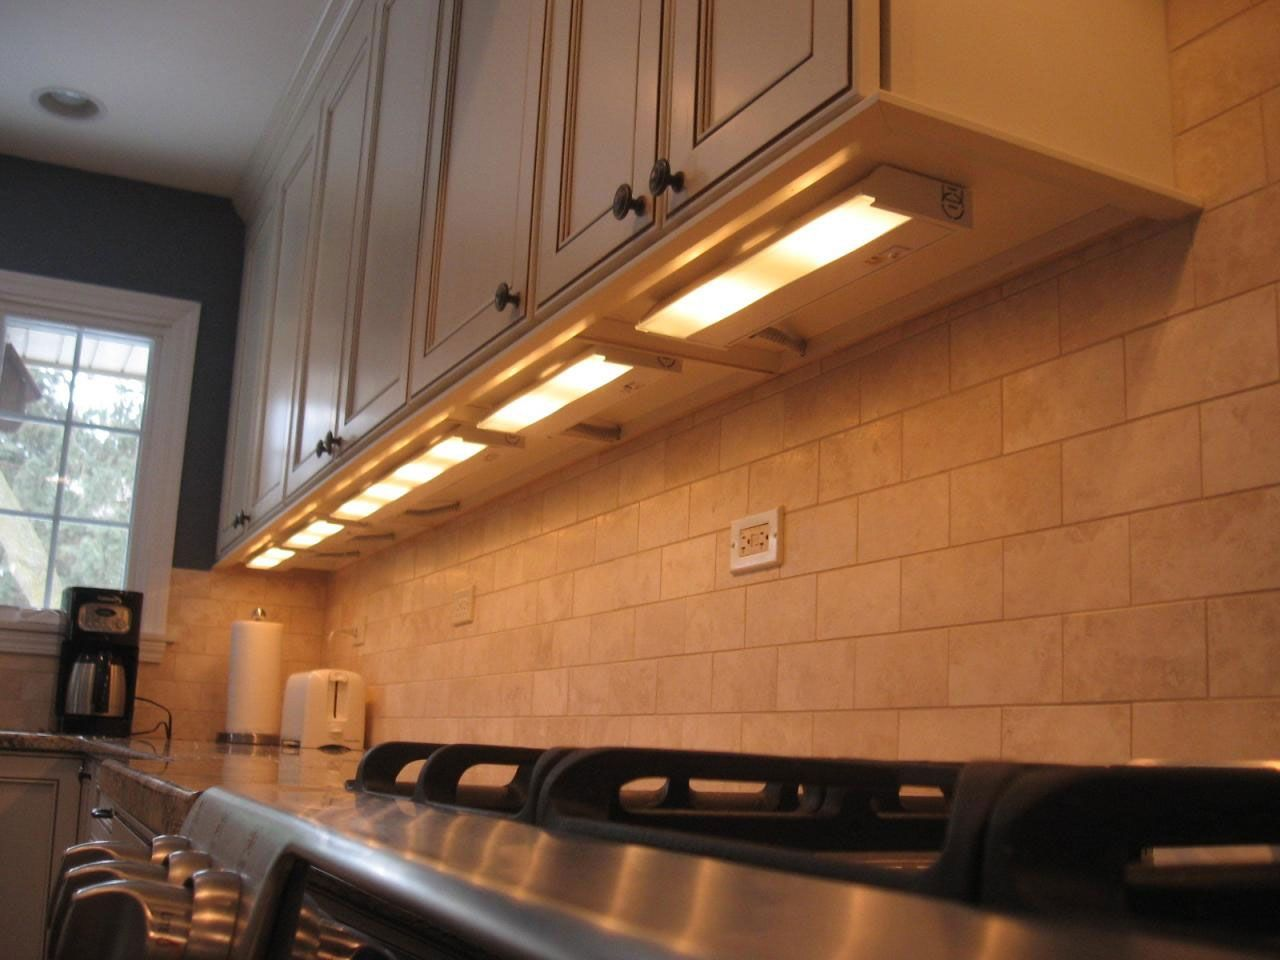 under counter lighting kitchen. Under Cabinet Lighting For Kitchen Counter